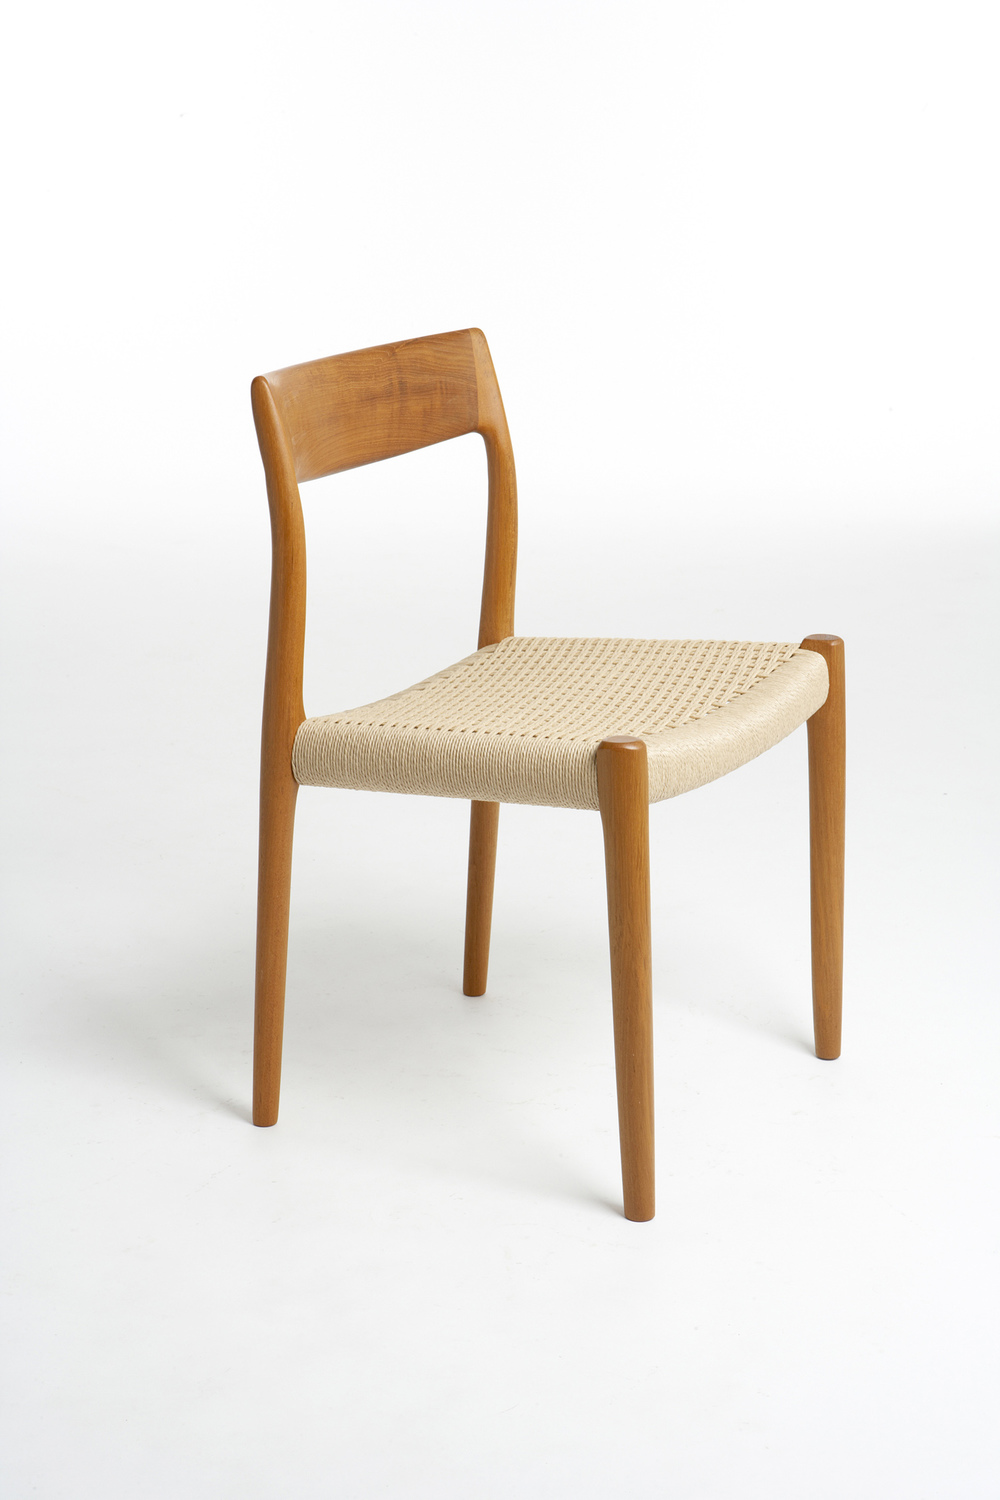 N O Moller 1958 Dining Chair